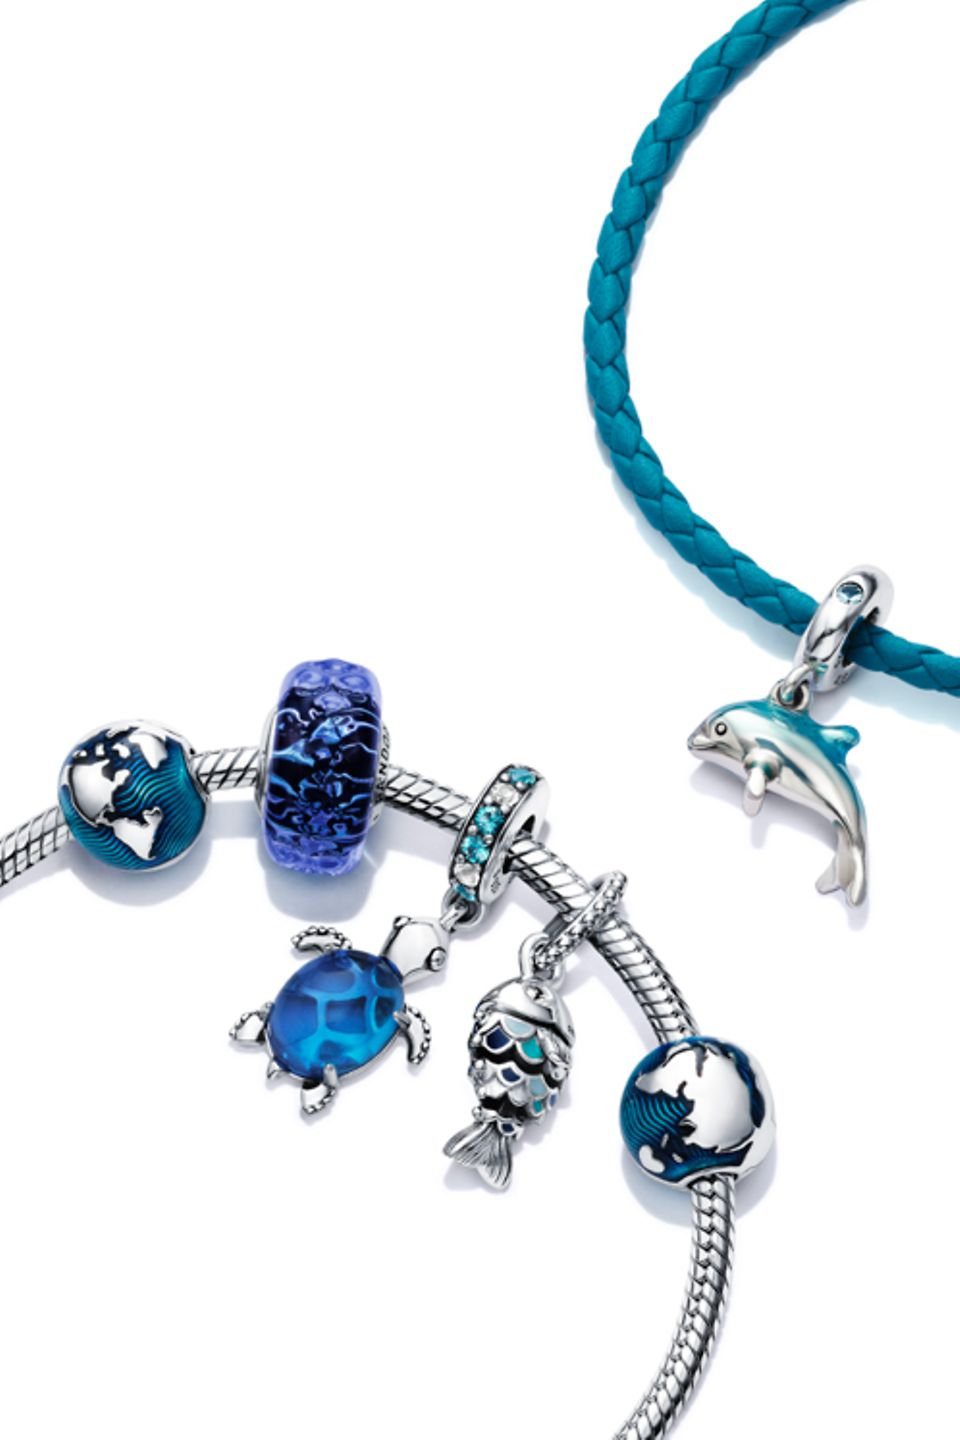 Pandora Blue Ocean sterling silver and blue charms and charm bracelets.